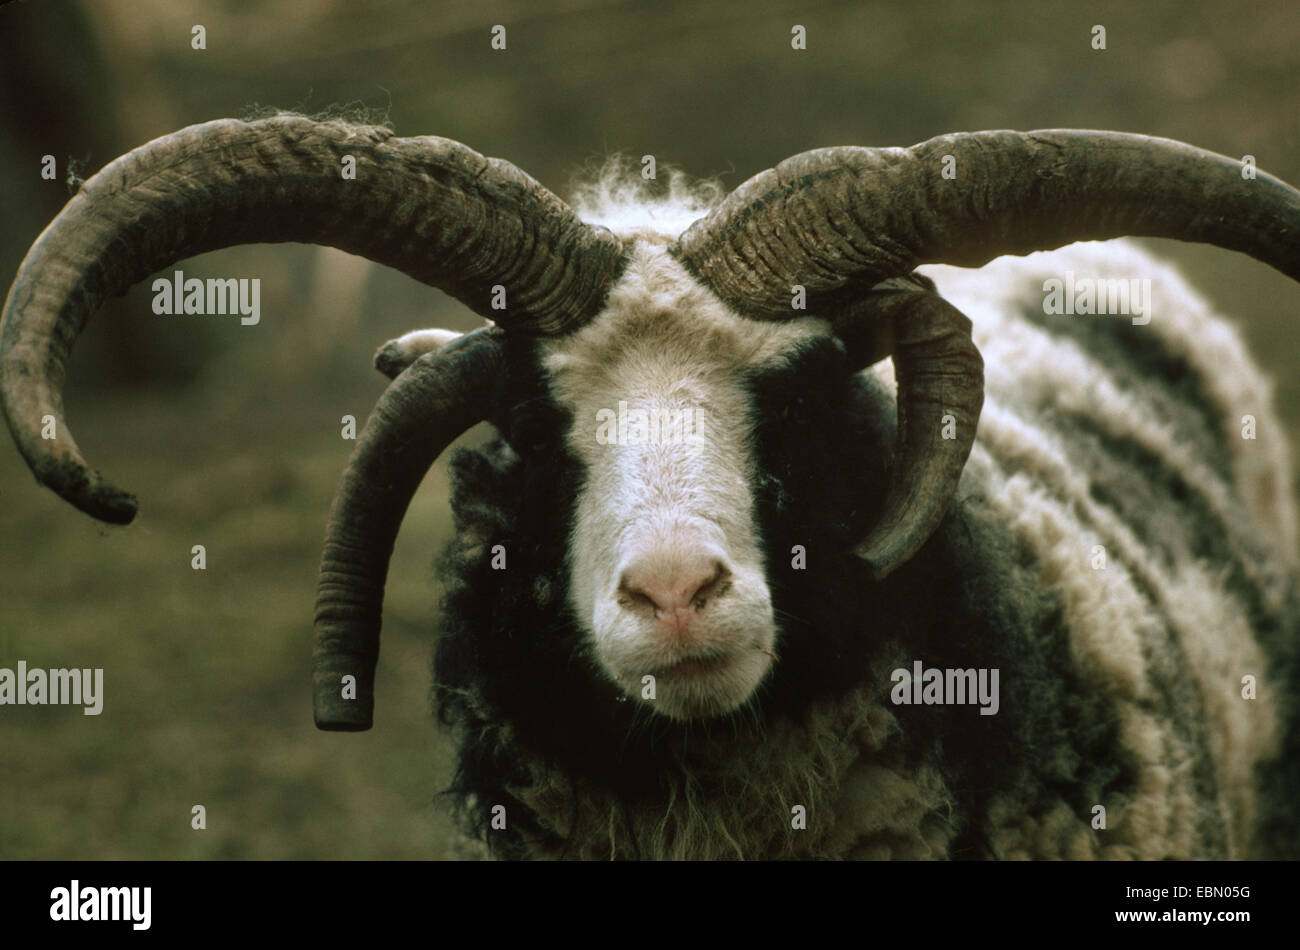 four-horn-sheep (Ovis ammon f. aries), portrait - Stock Image